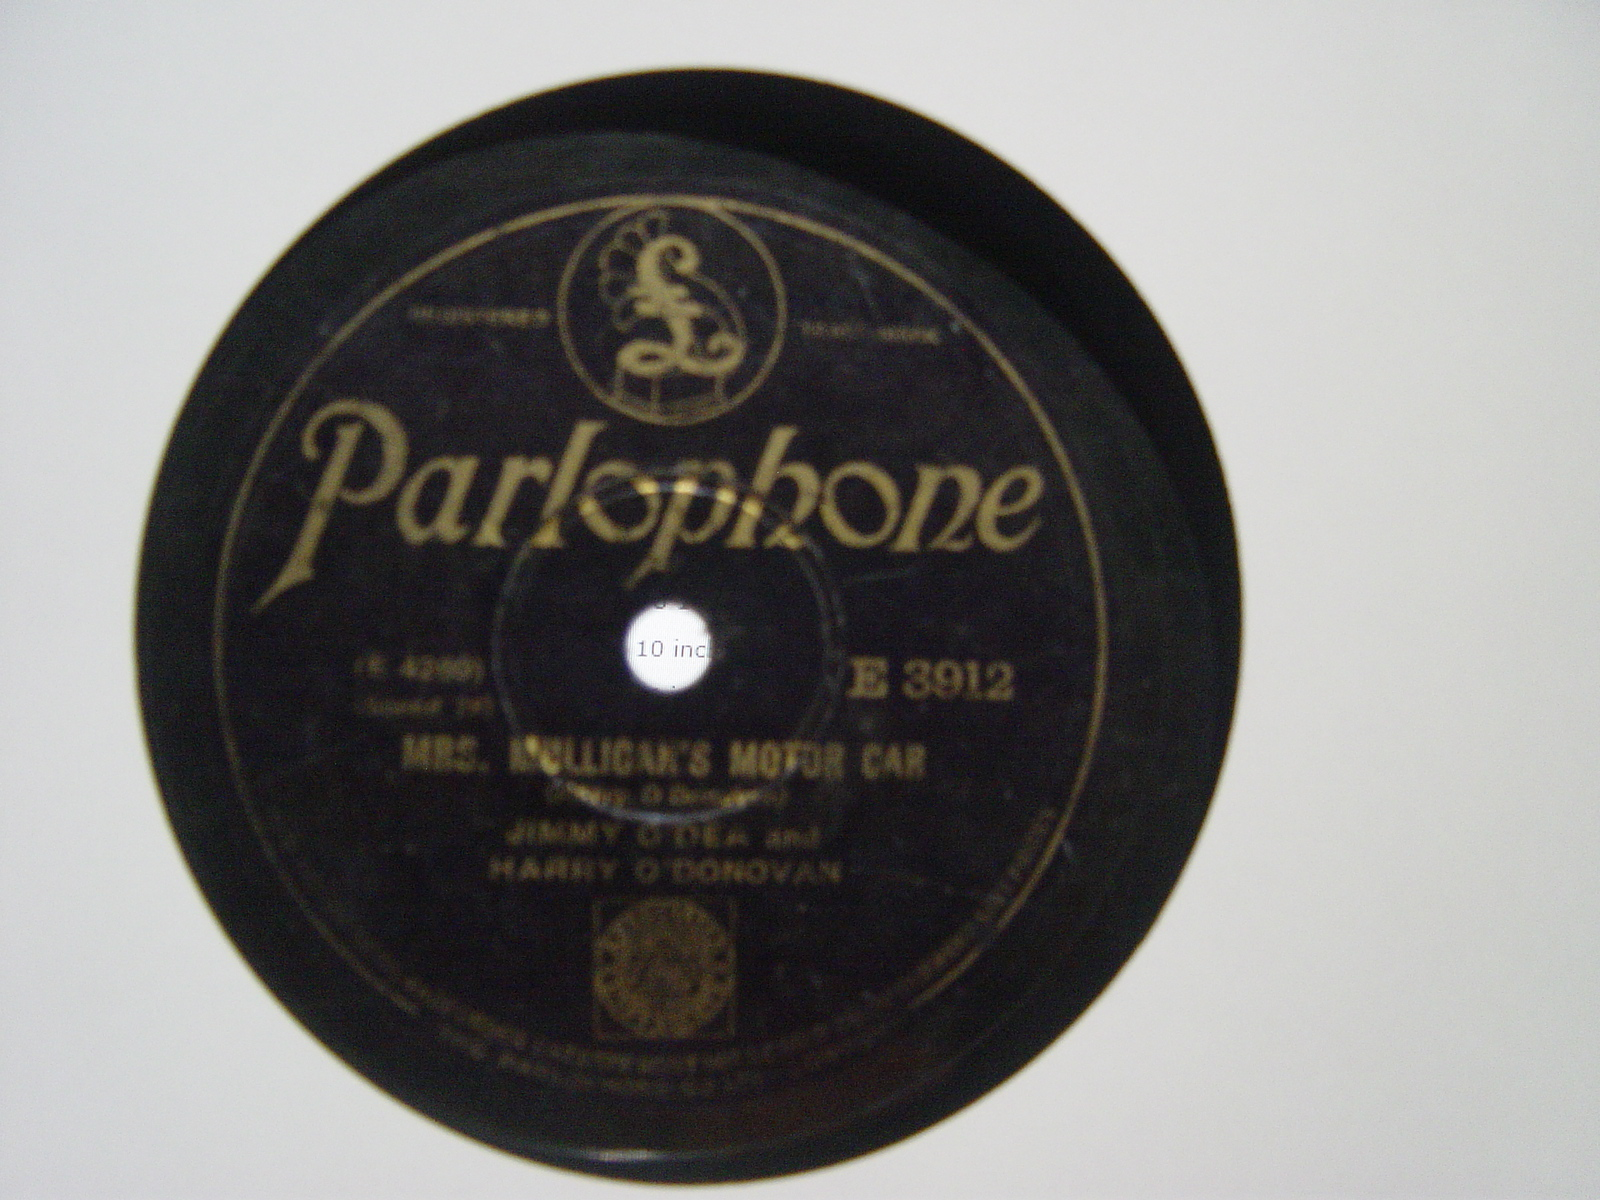 Jimmy O'Dea & Harry O'Donovan - Parlophone E.3912